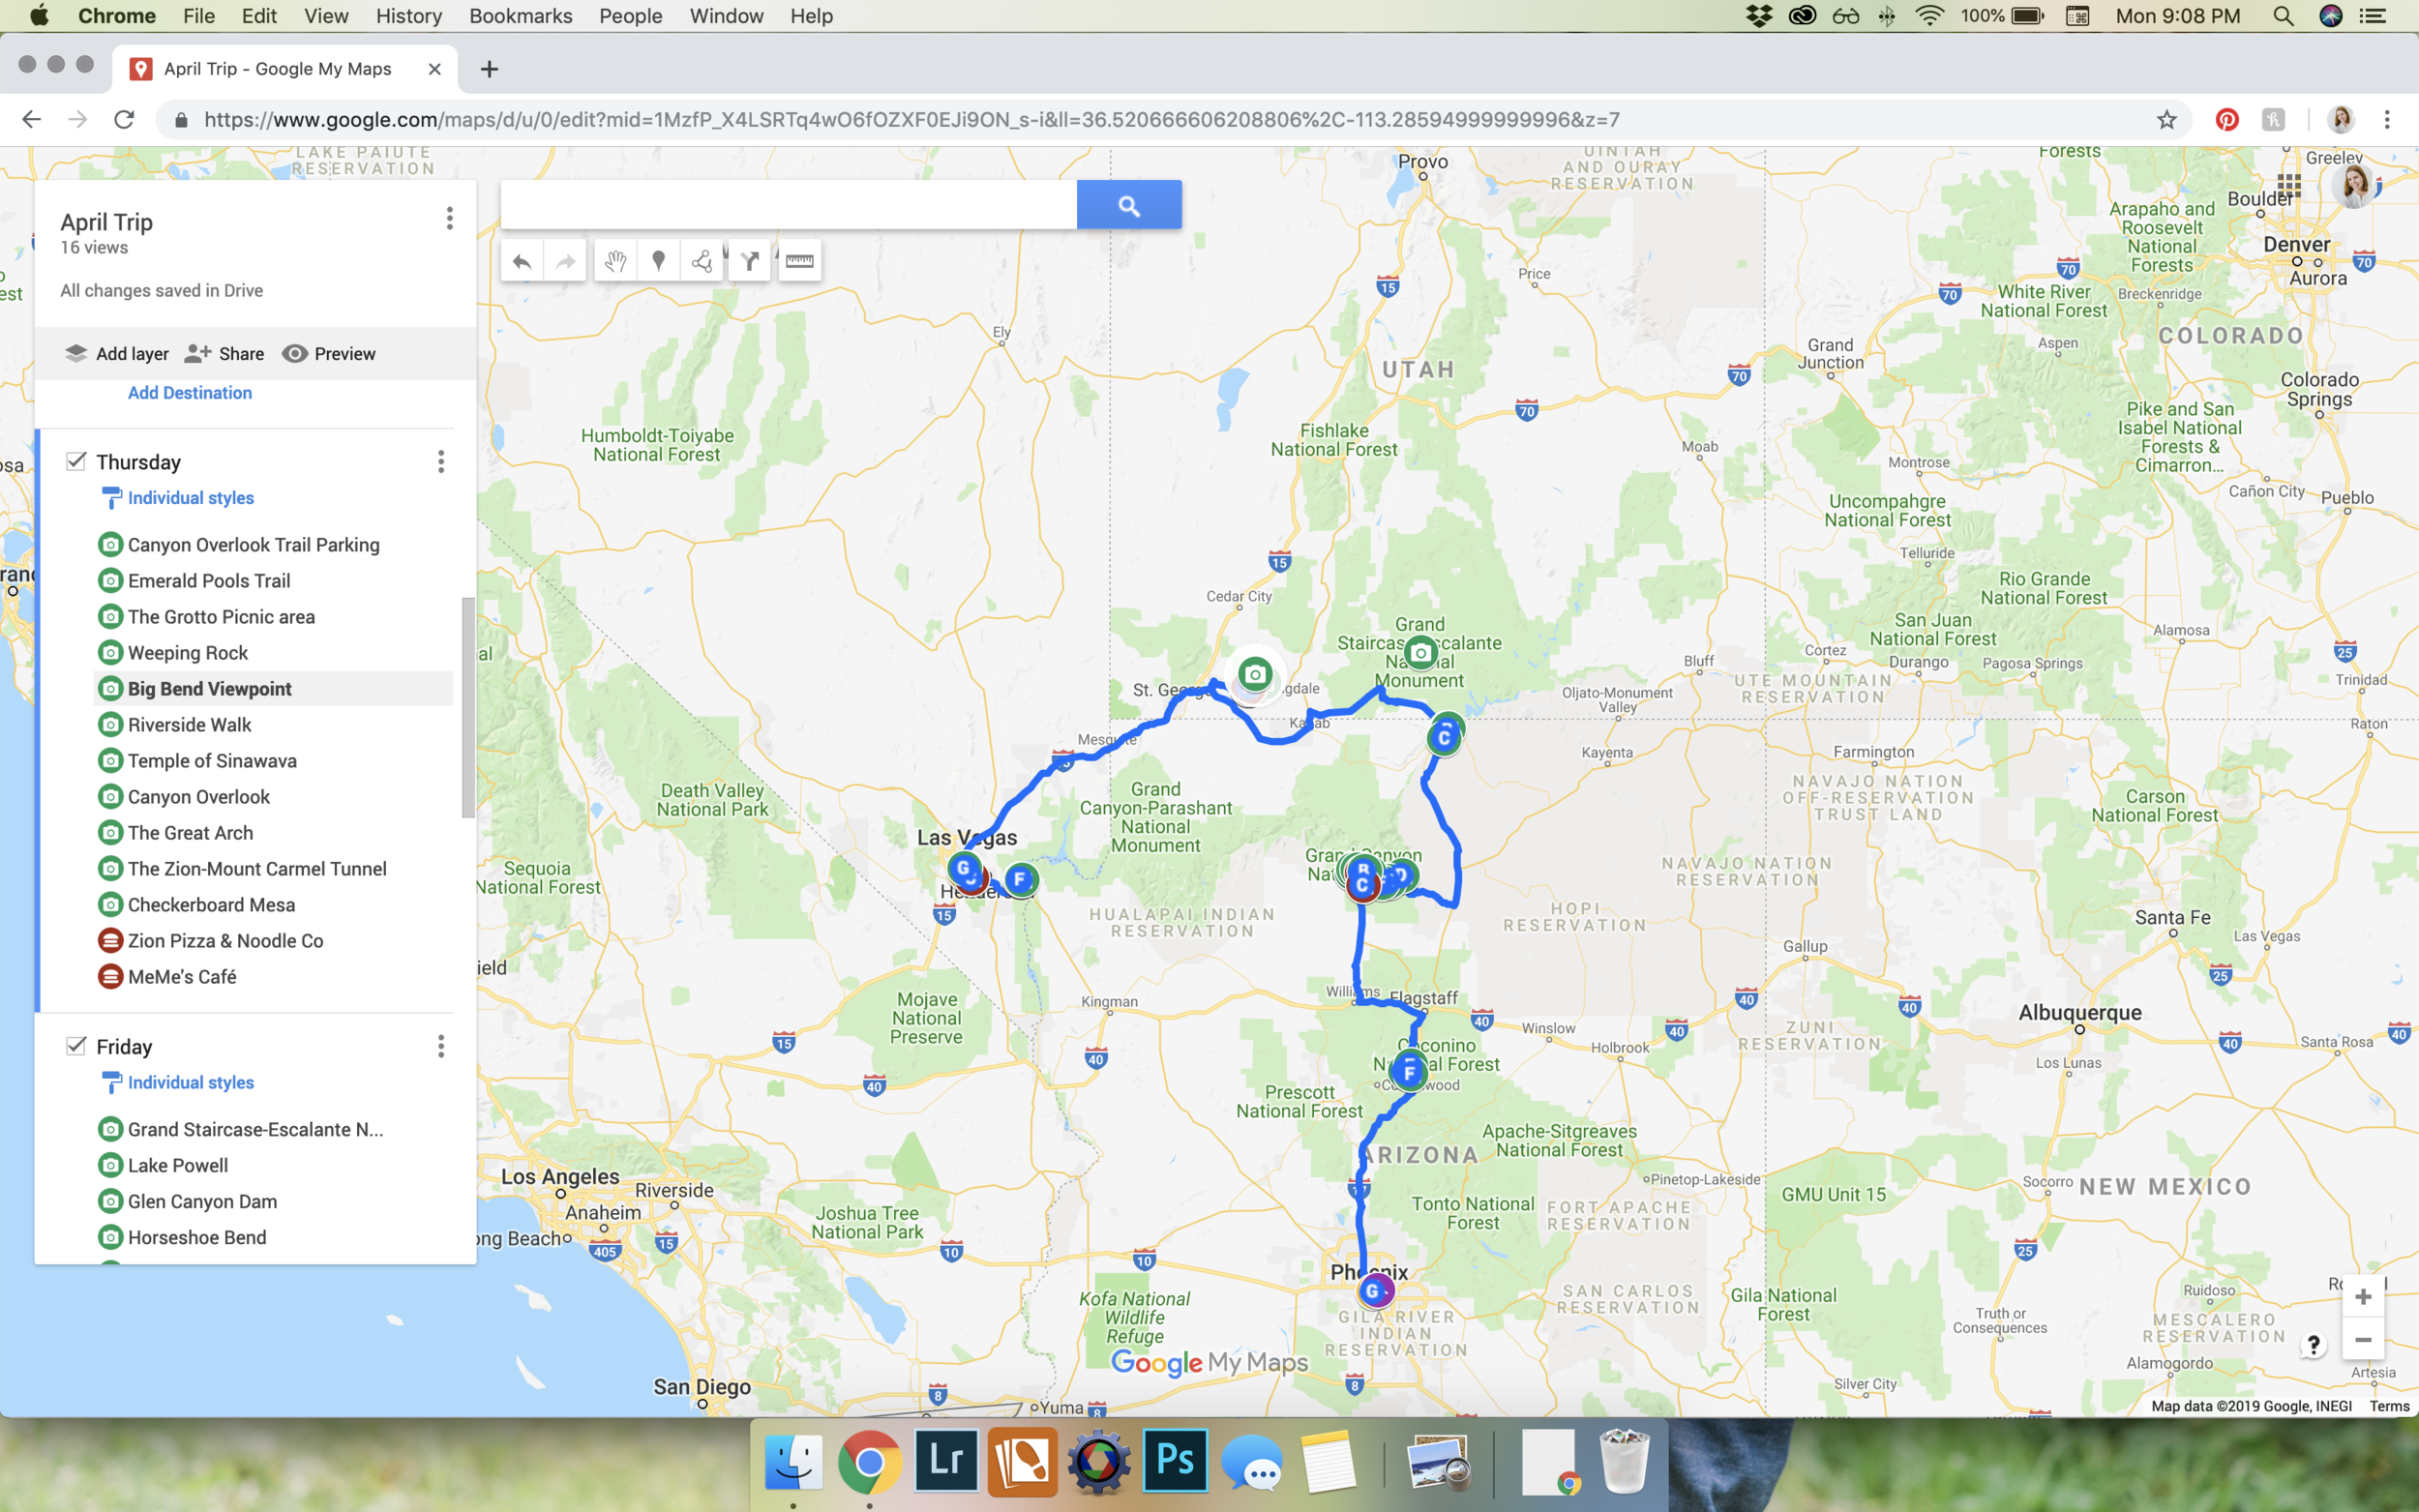 google-my-maps-3.png